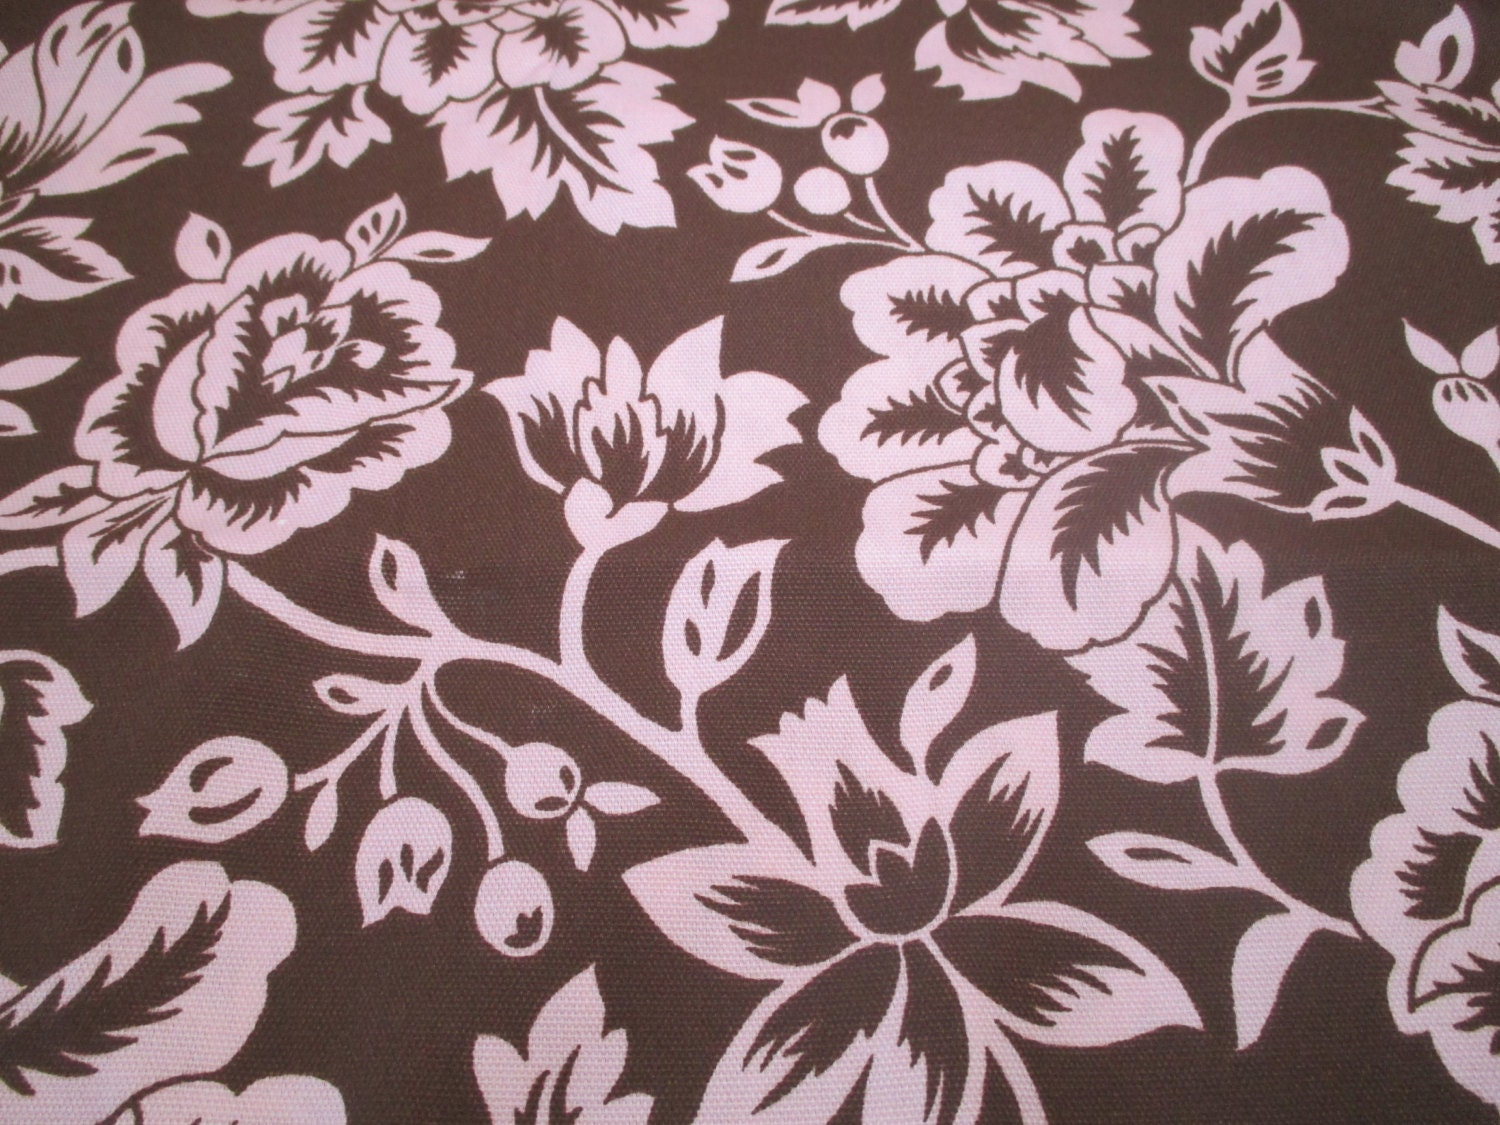 home decor fabric by the yard. Black Bedroom Furniture Sets. Home Design Ideas